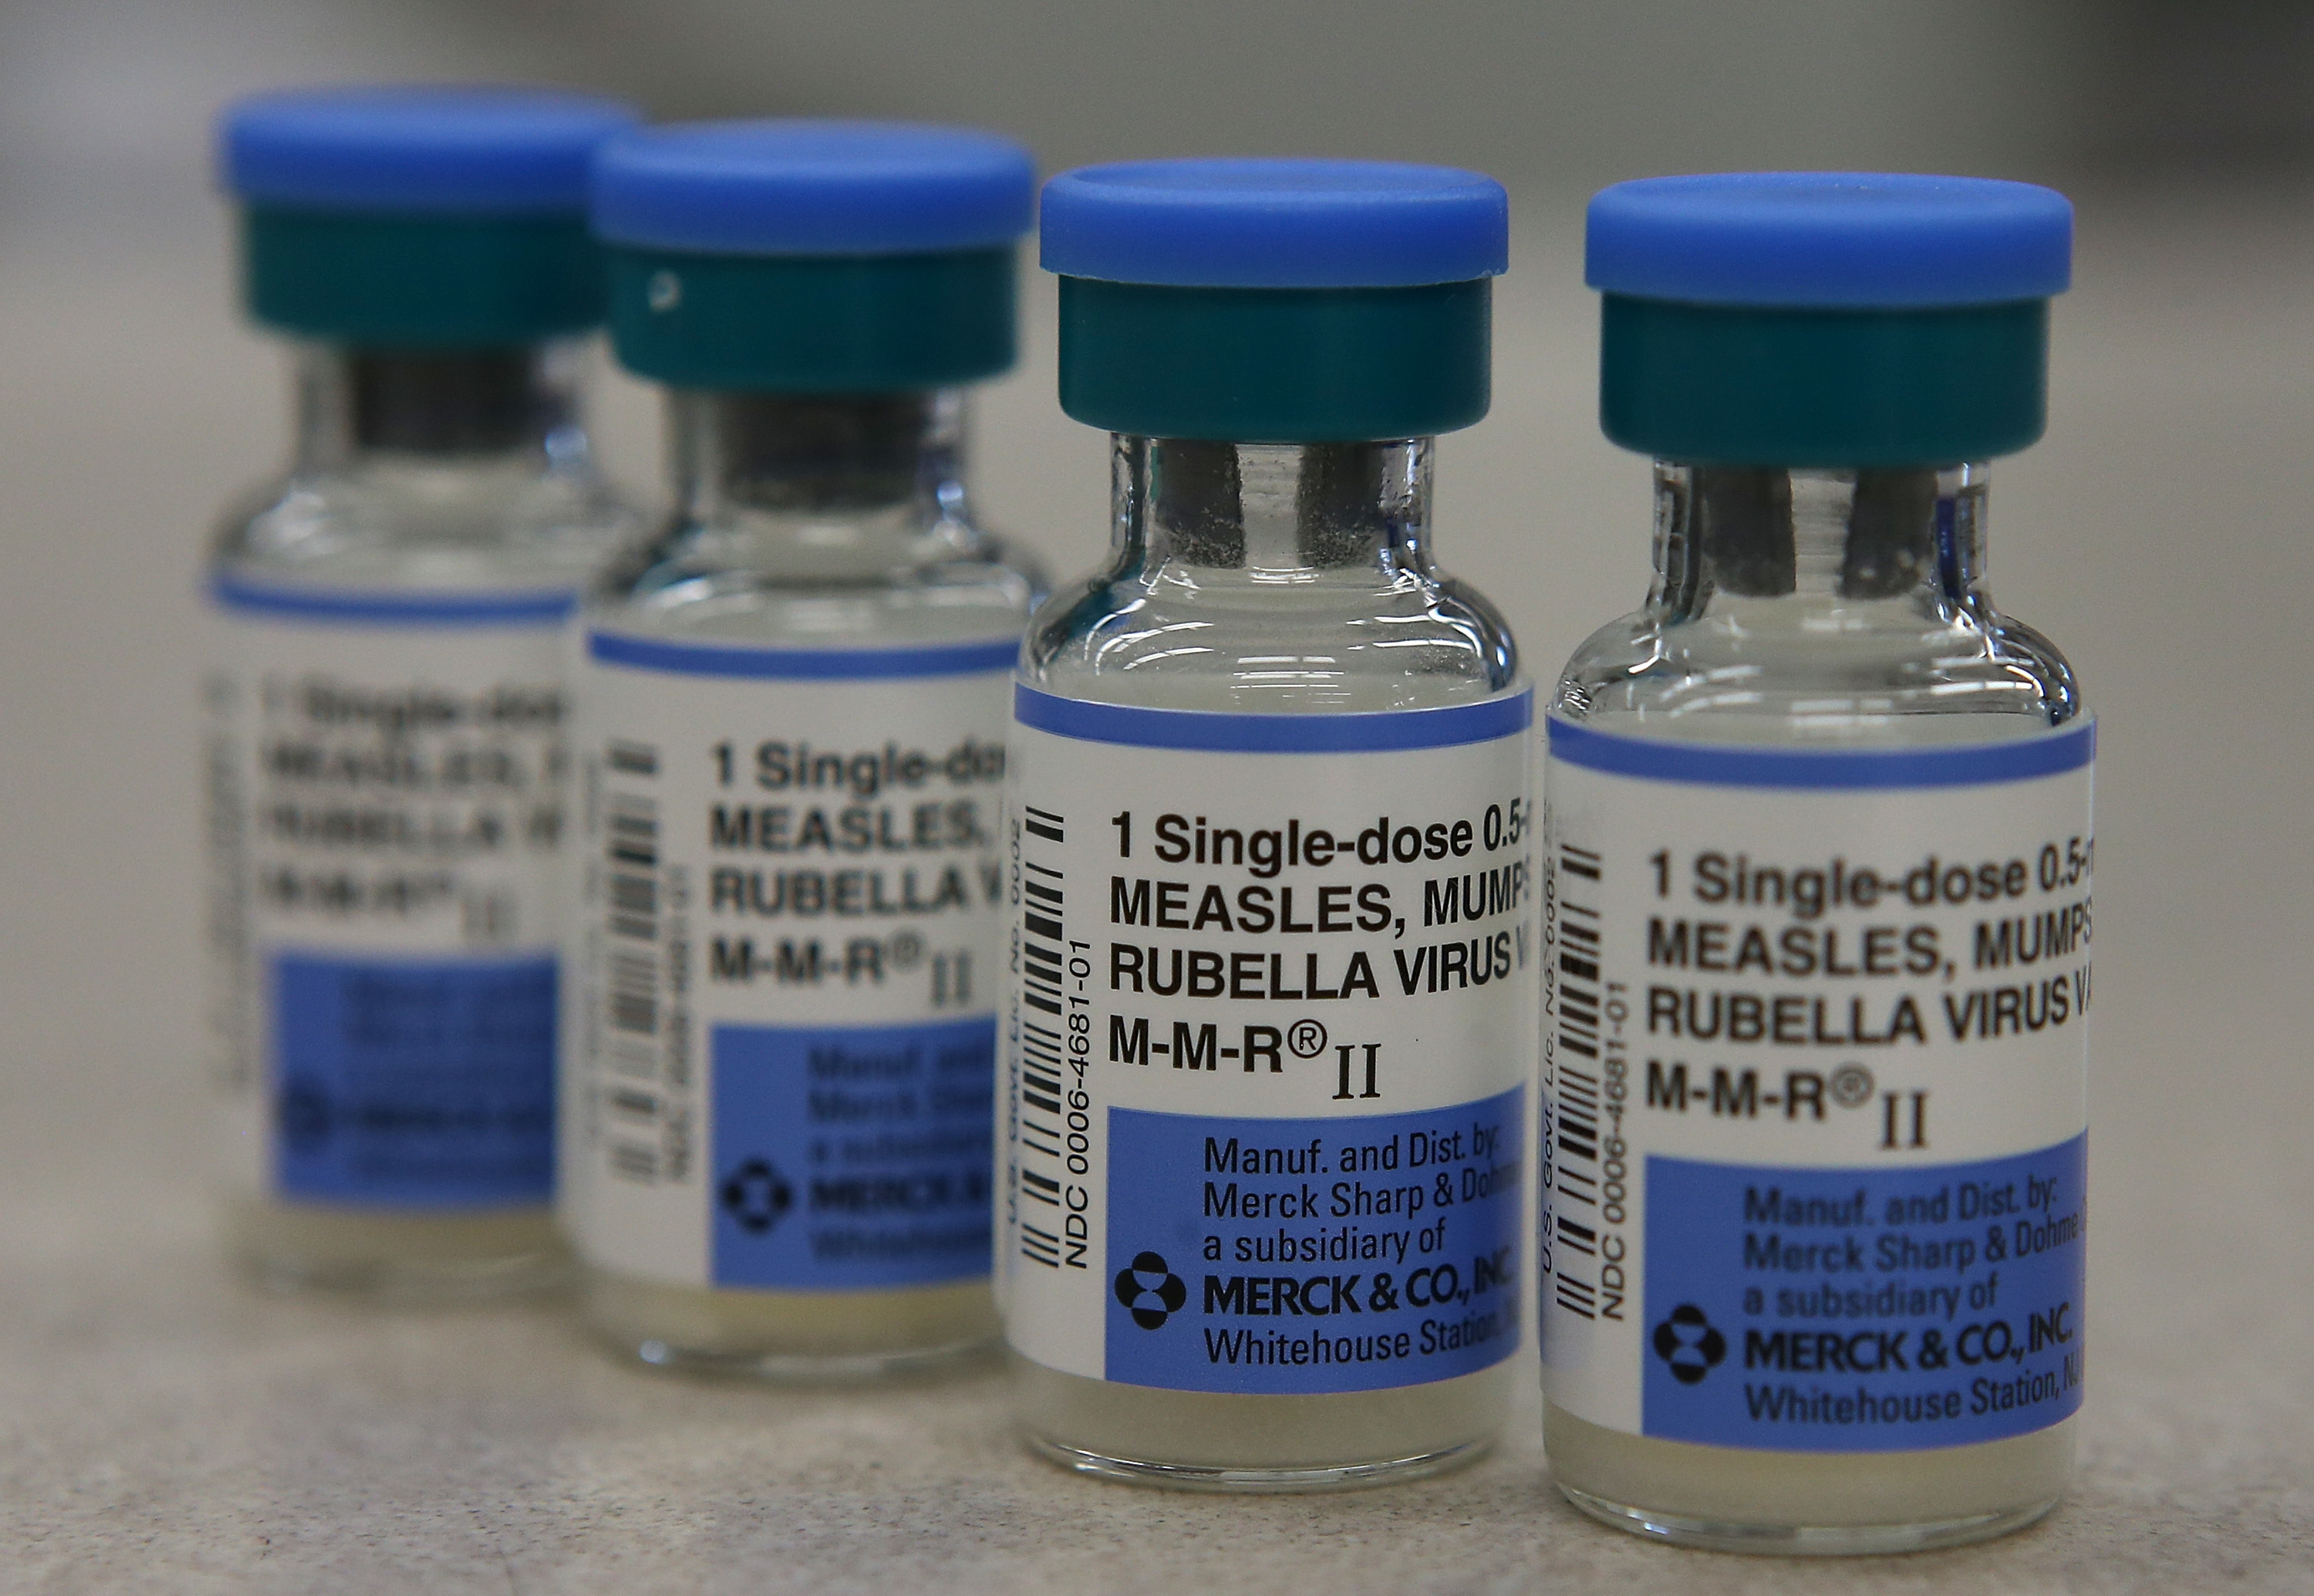 Vials of measles, mumps and rubella vaccine after an outbreak of measles in California grew to 68 cases.